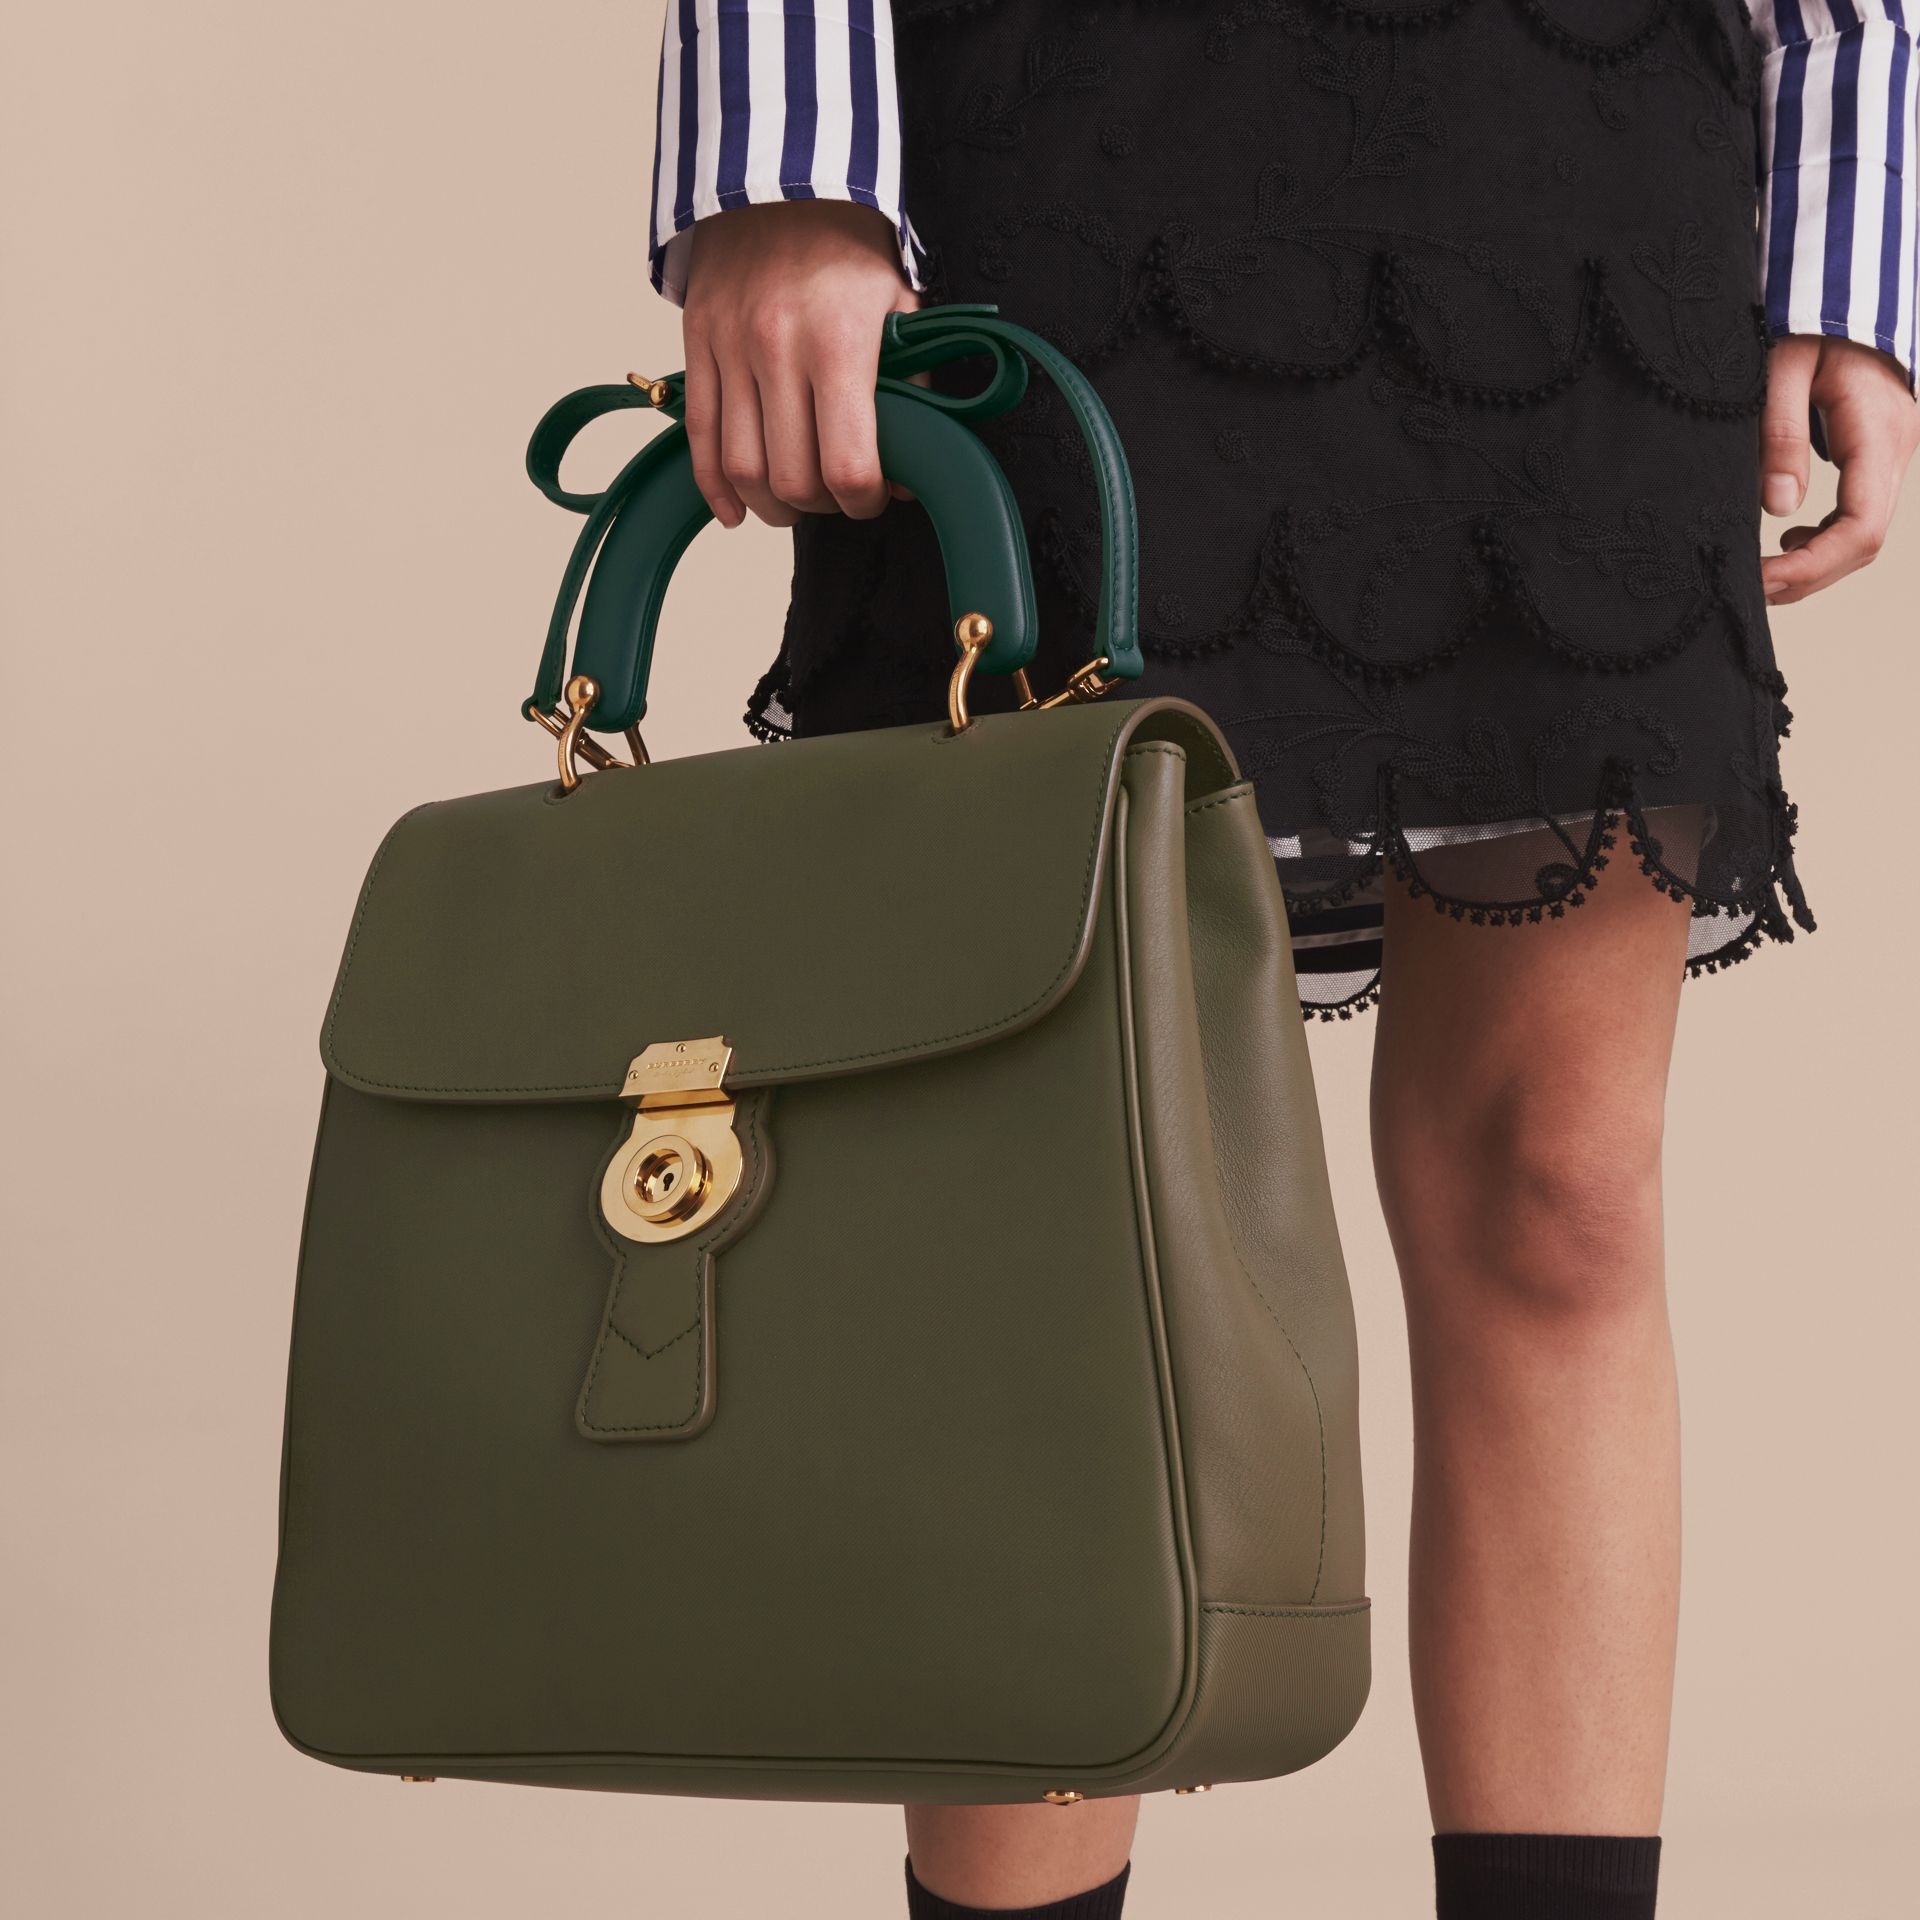 The Large DK88 Top Handle Bag in Moss Green - Women | Burberry Australia - gallery image 8